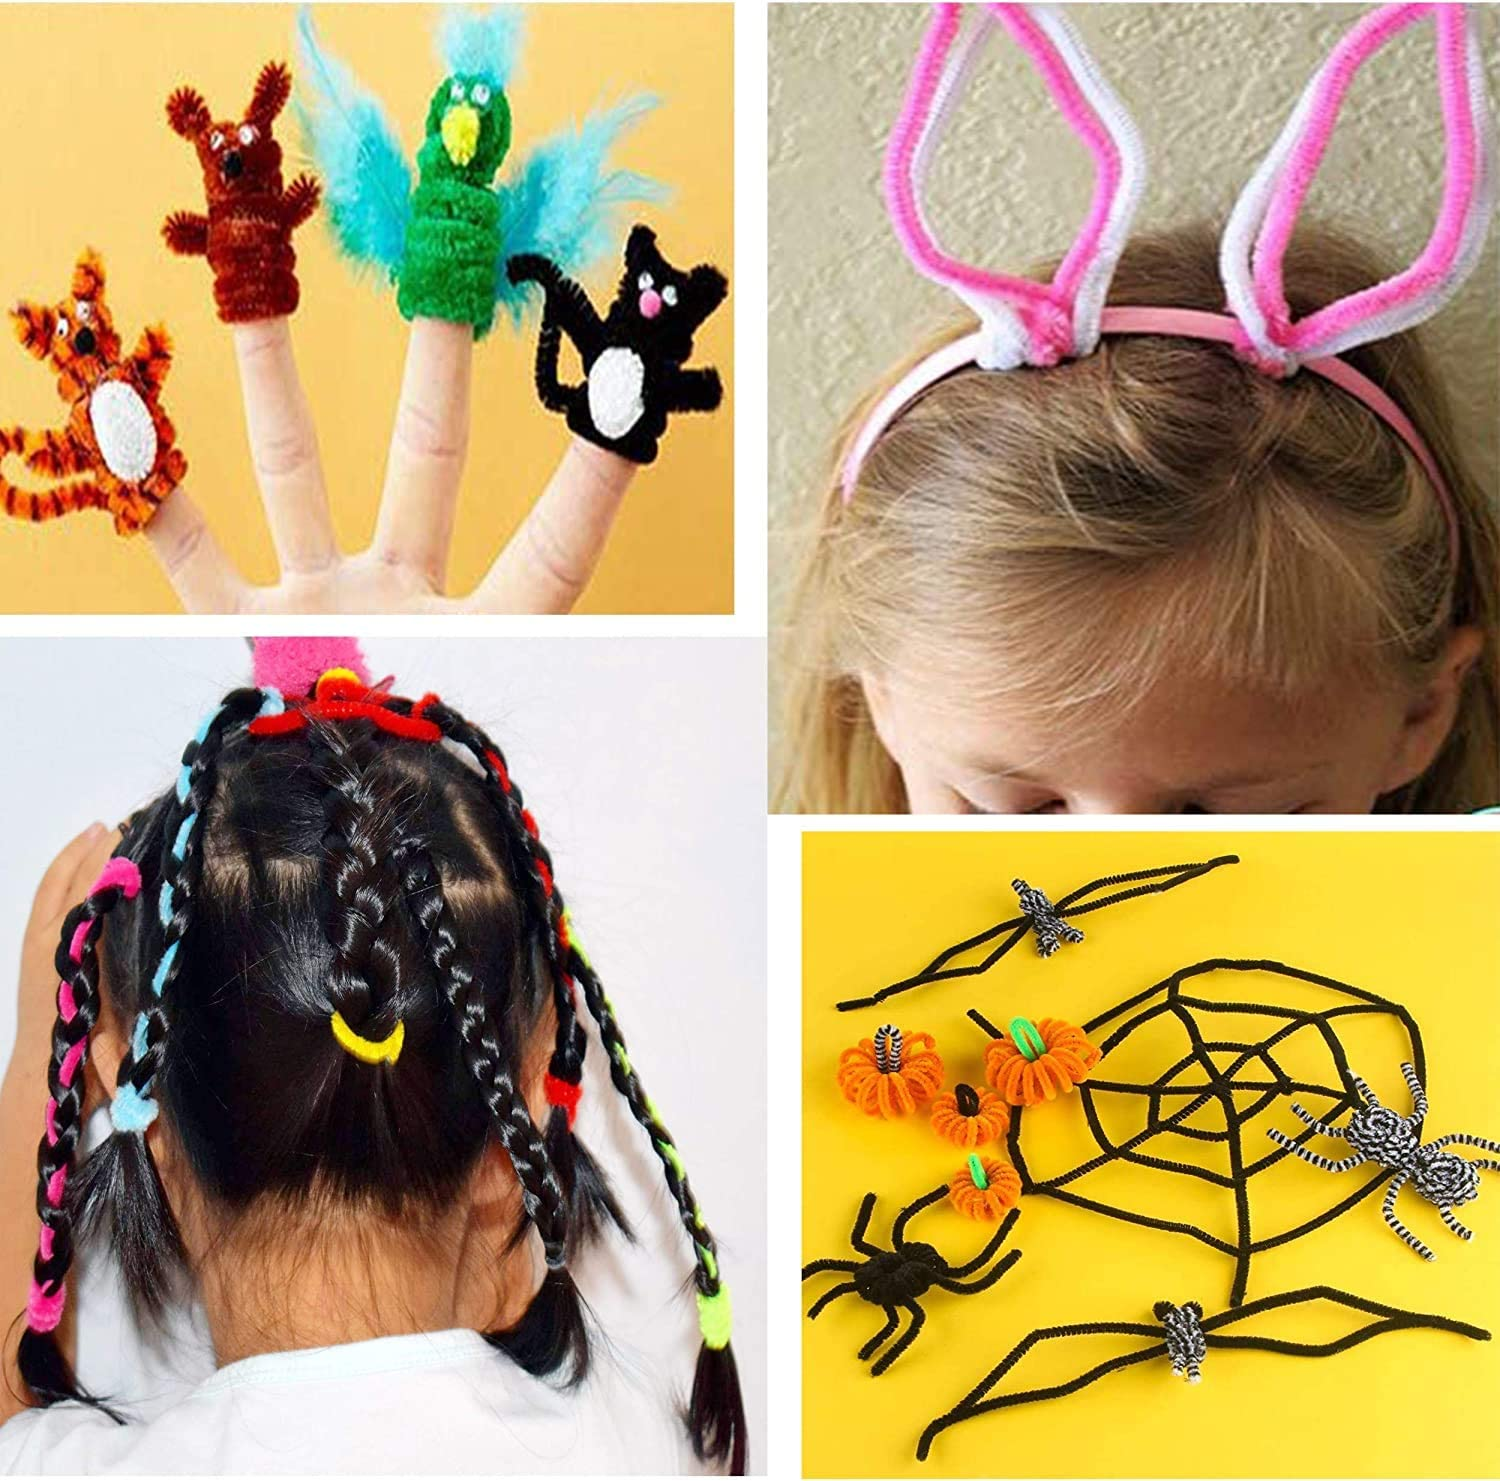 10 Colors 500Pcs Craft Pipe Cleaners Chenille Stems,Pipe Cleaners ...